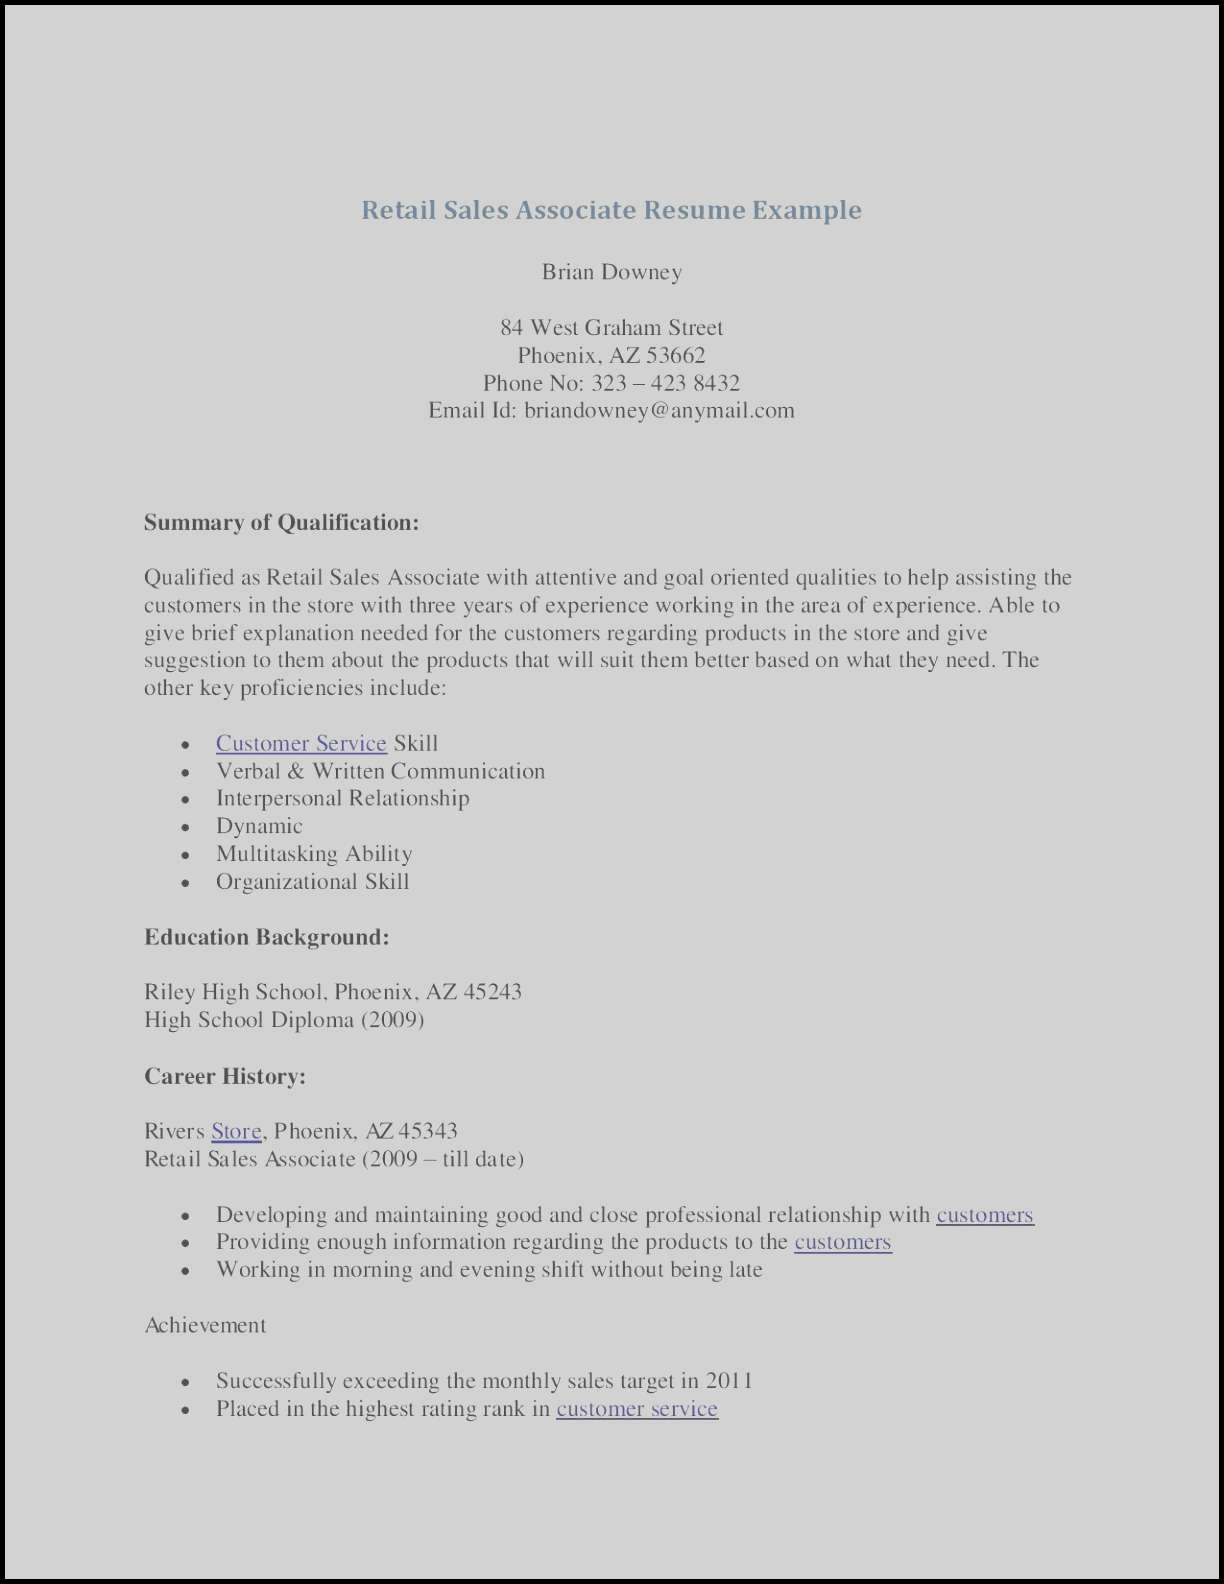 Retail Store Resume - Free Creative Resume Template Awesome Bookmarkers 0d Retail Pages